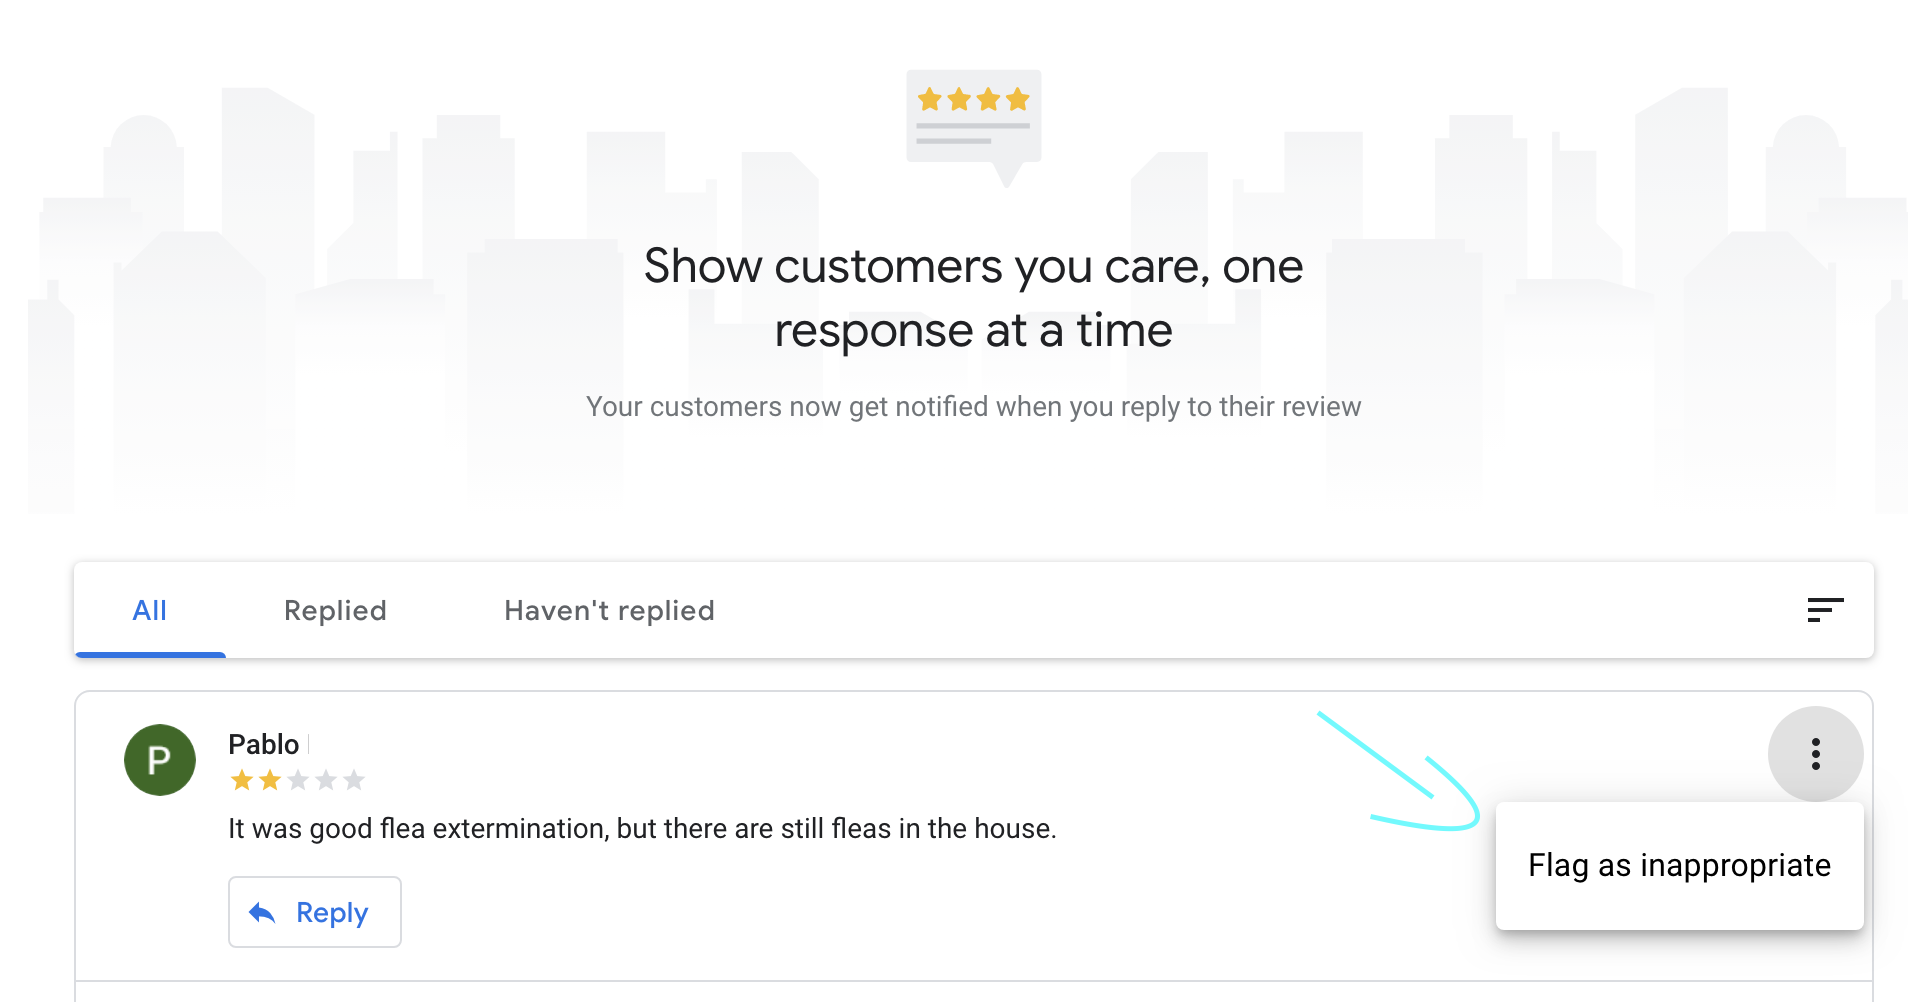 flagging as inappropriate a review on Google my business